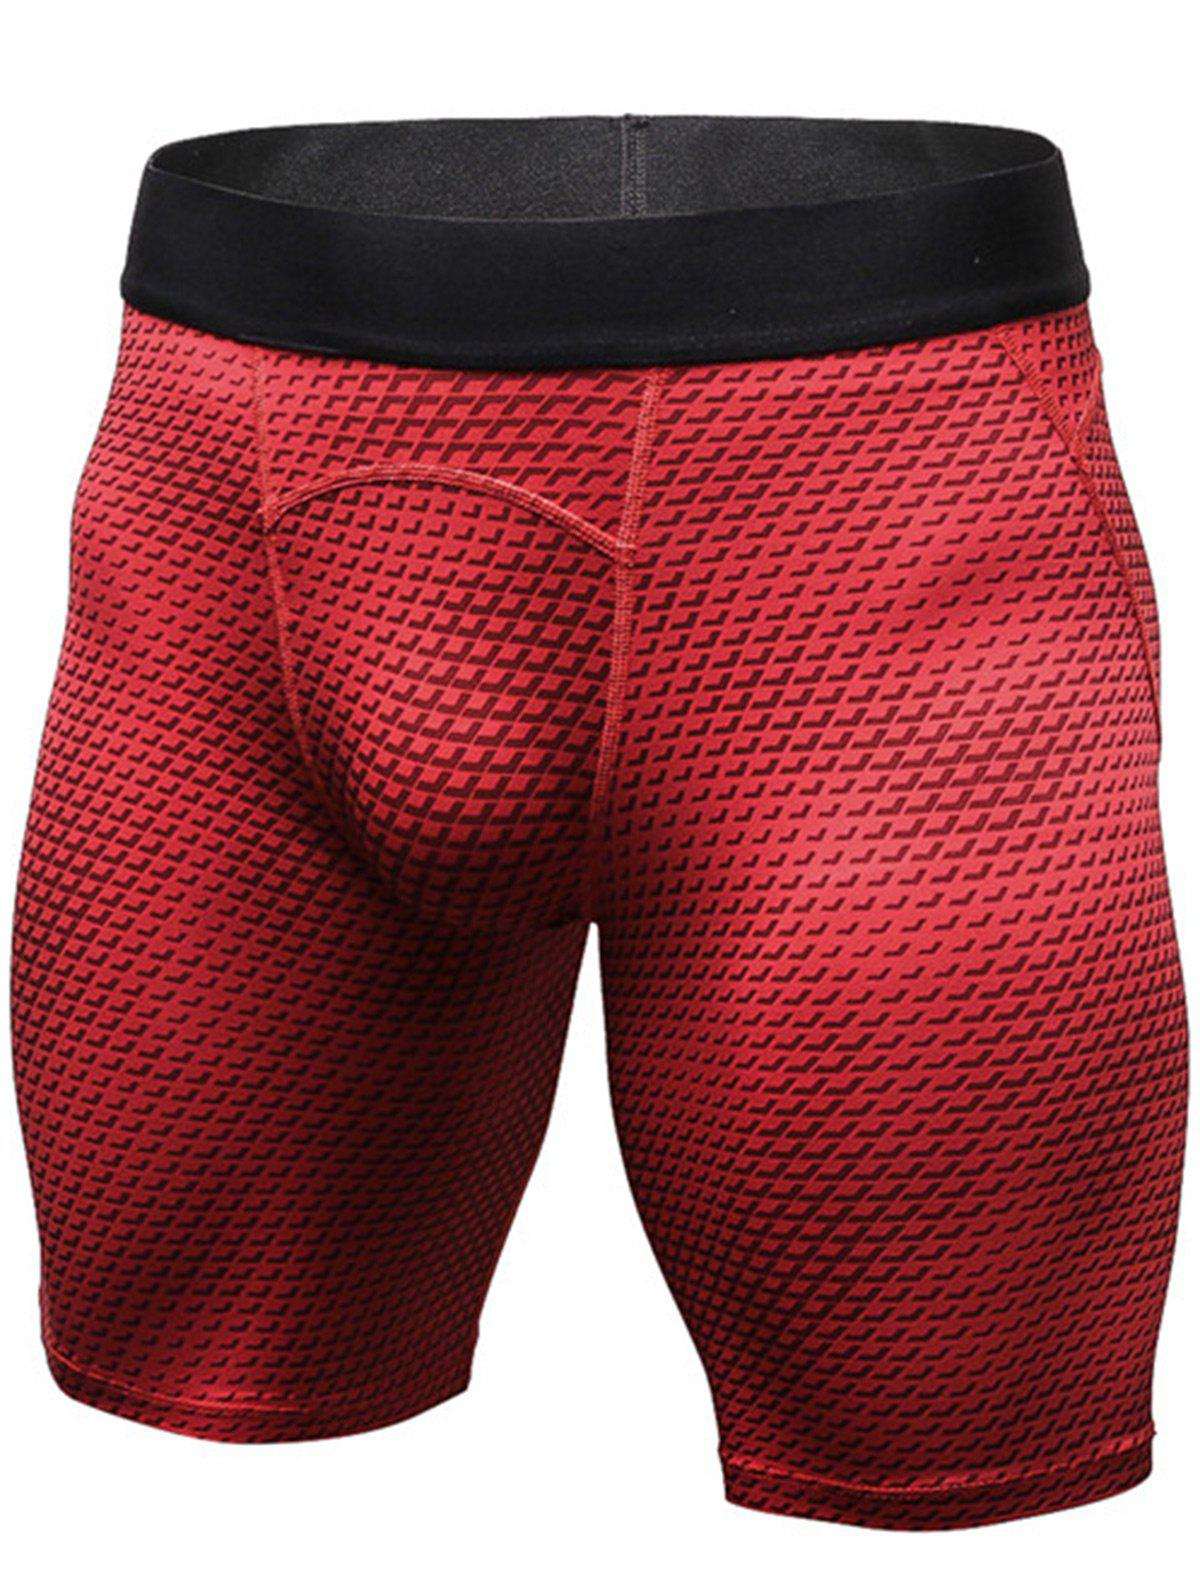 3D Geometric Print Fitted Quick Dry Gym Shorts - RED L